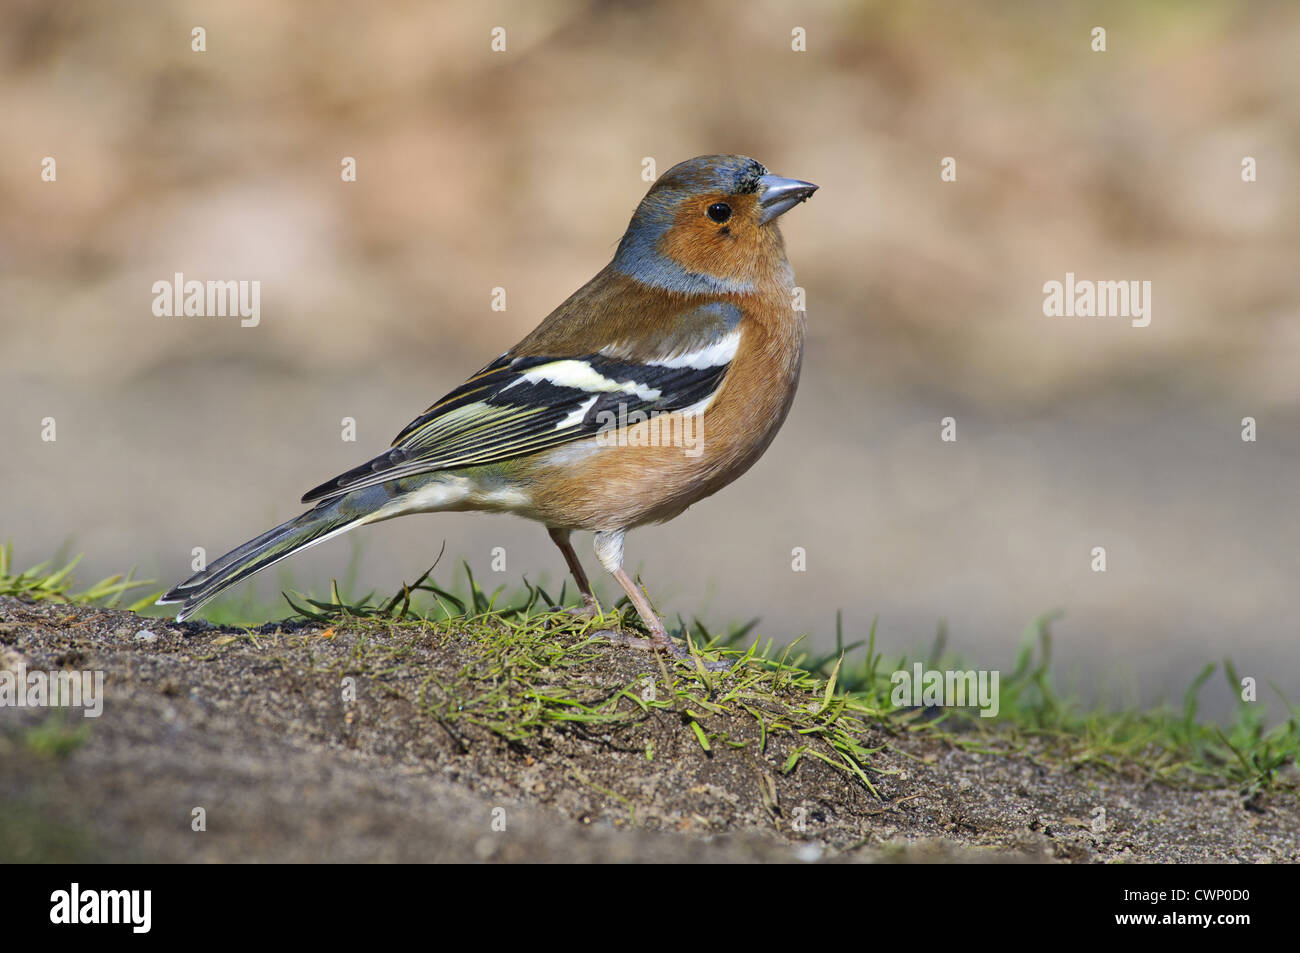 Chaffinch (Fringilla coelebs) adult male, foraging on ground under birdfeeders, Minsmere RSPB Reserve, Suffolk, - Stock Image